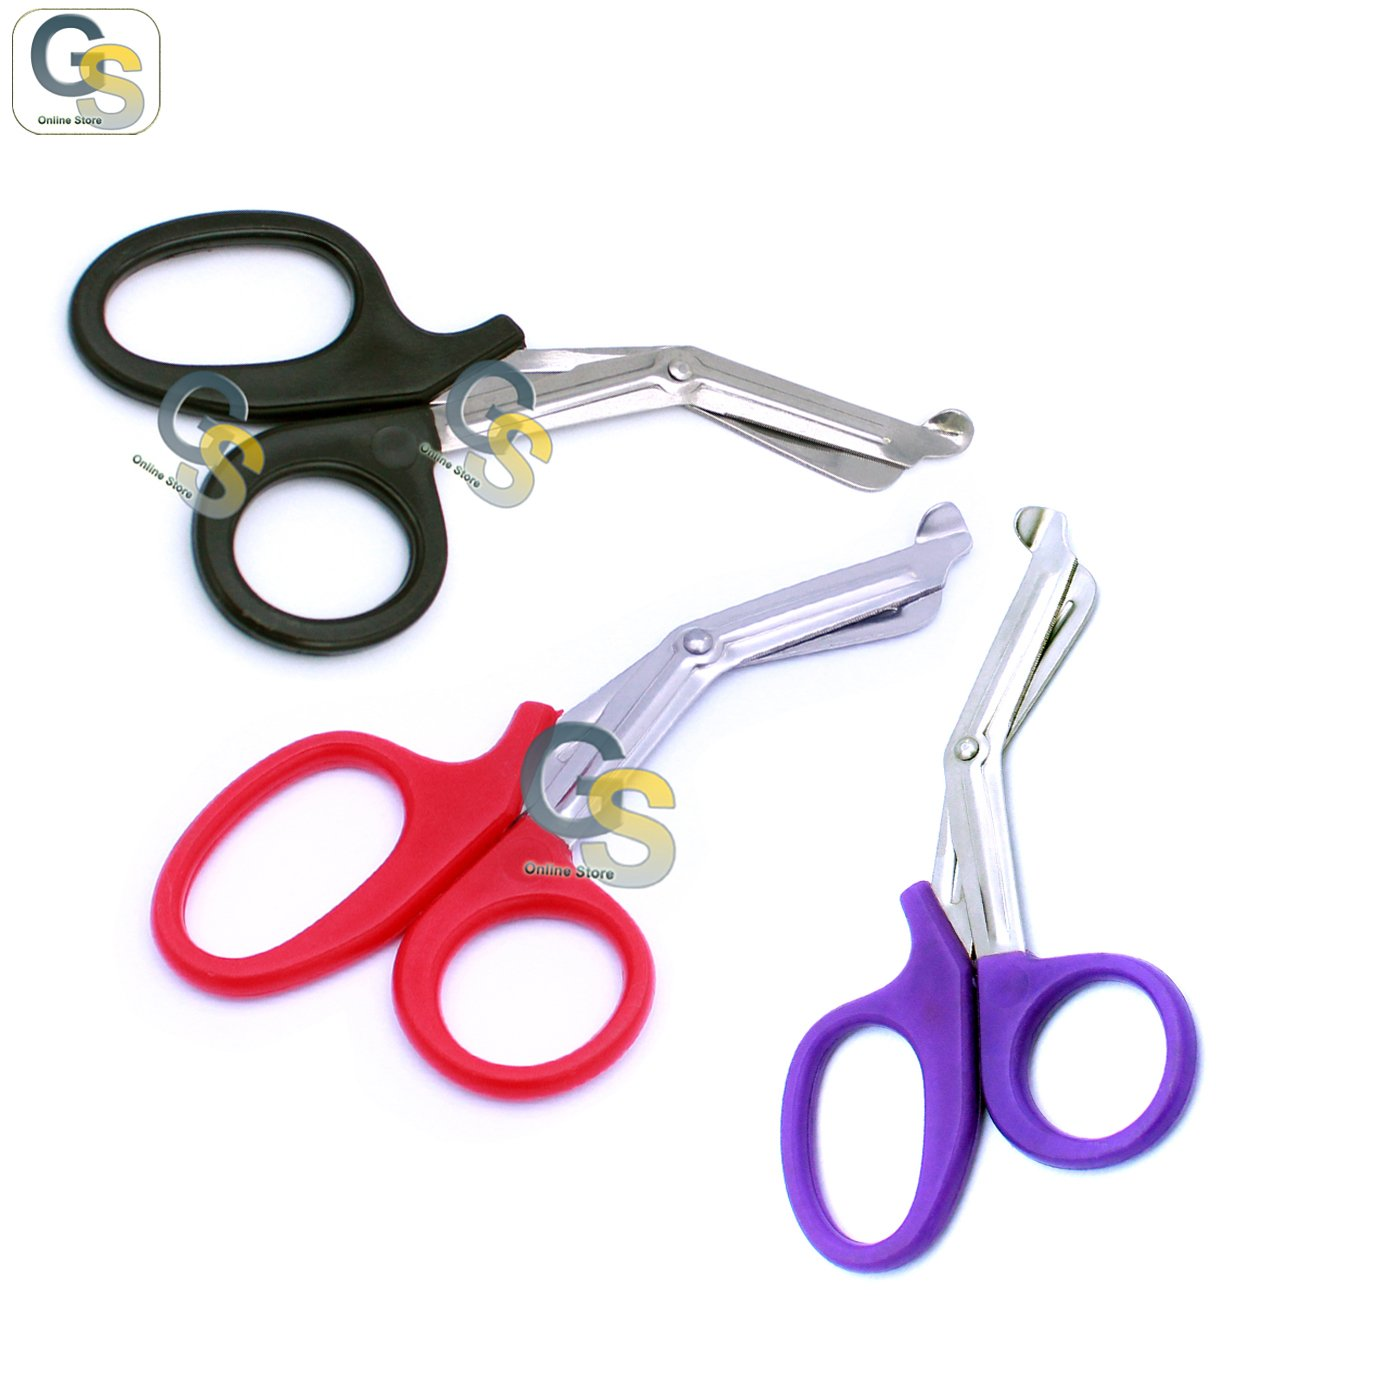 G.S 3 PCS (BLACK & RED & PURPLE) PARAMEDIC UTILITY BANDAGE TRAUMA EMT EMS SHEARS SCISSORS 7.25 INCH STAINLESS STEEL